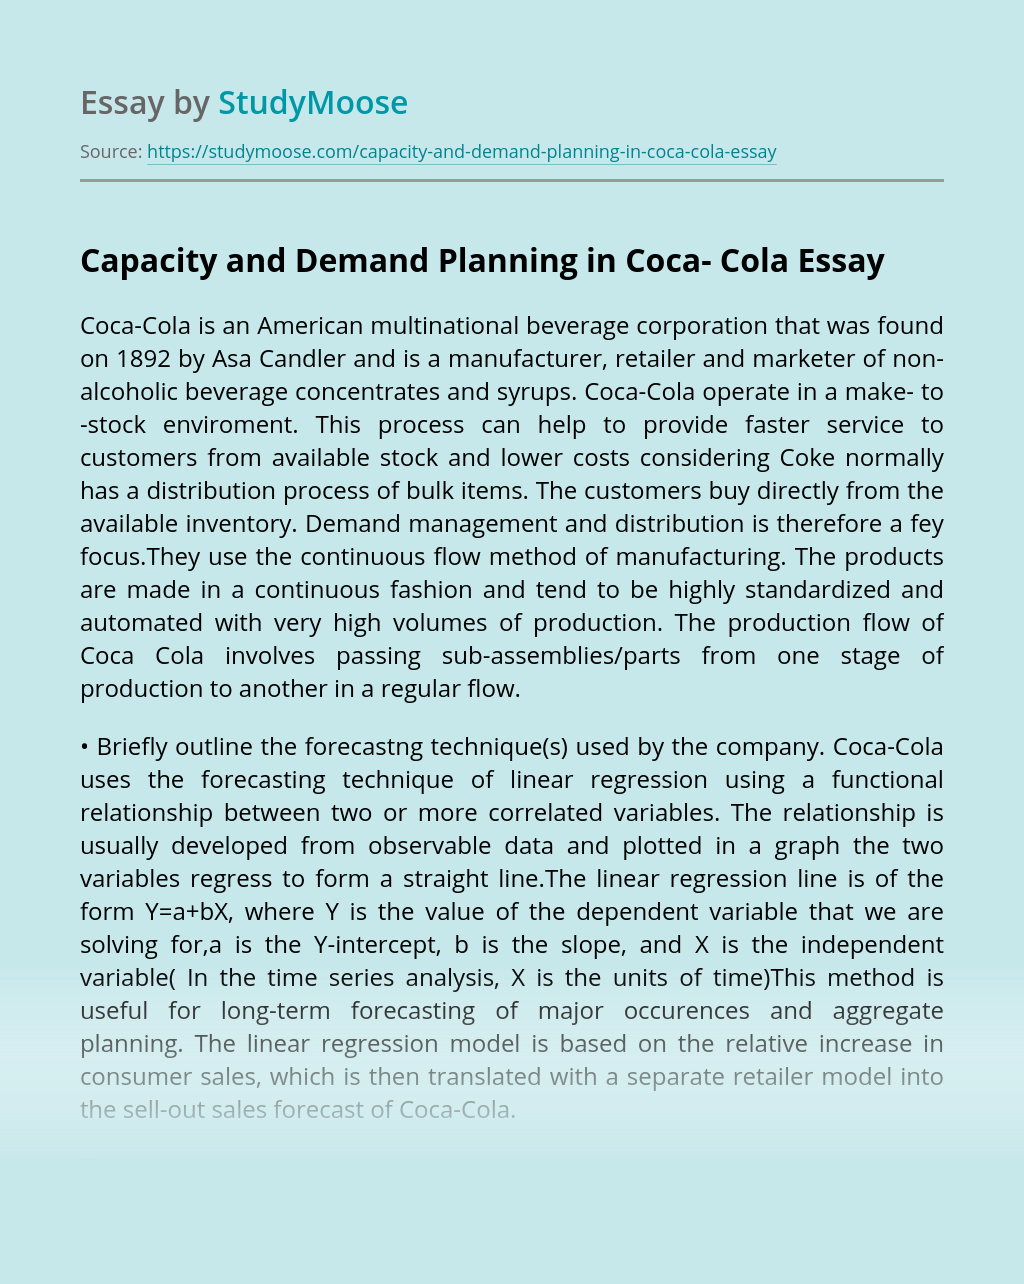 Capacity and Demand Planning in Coca- Cola